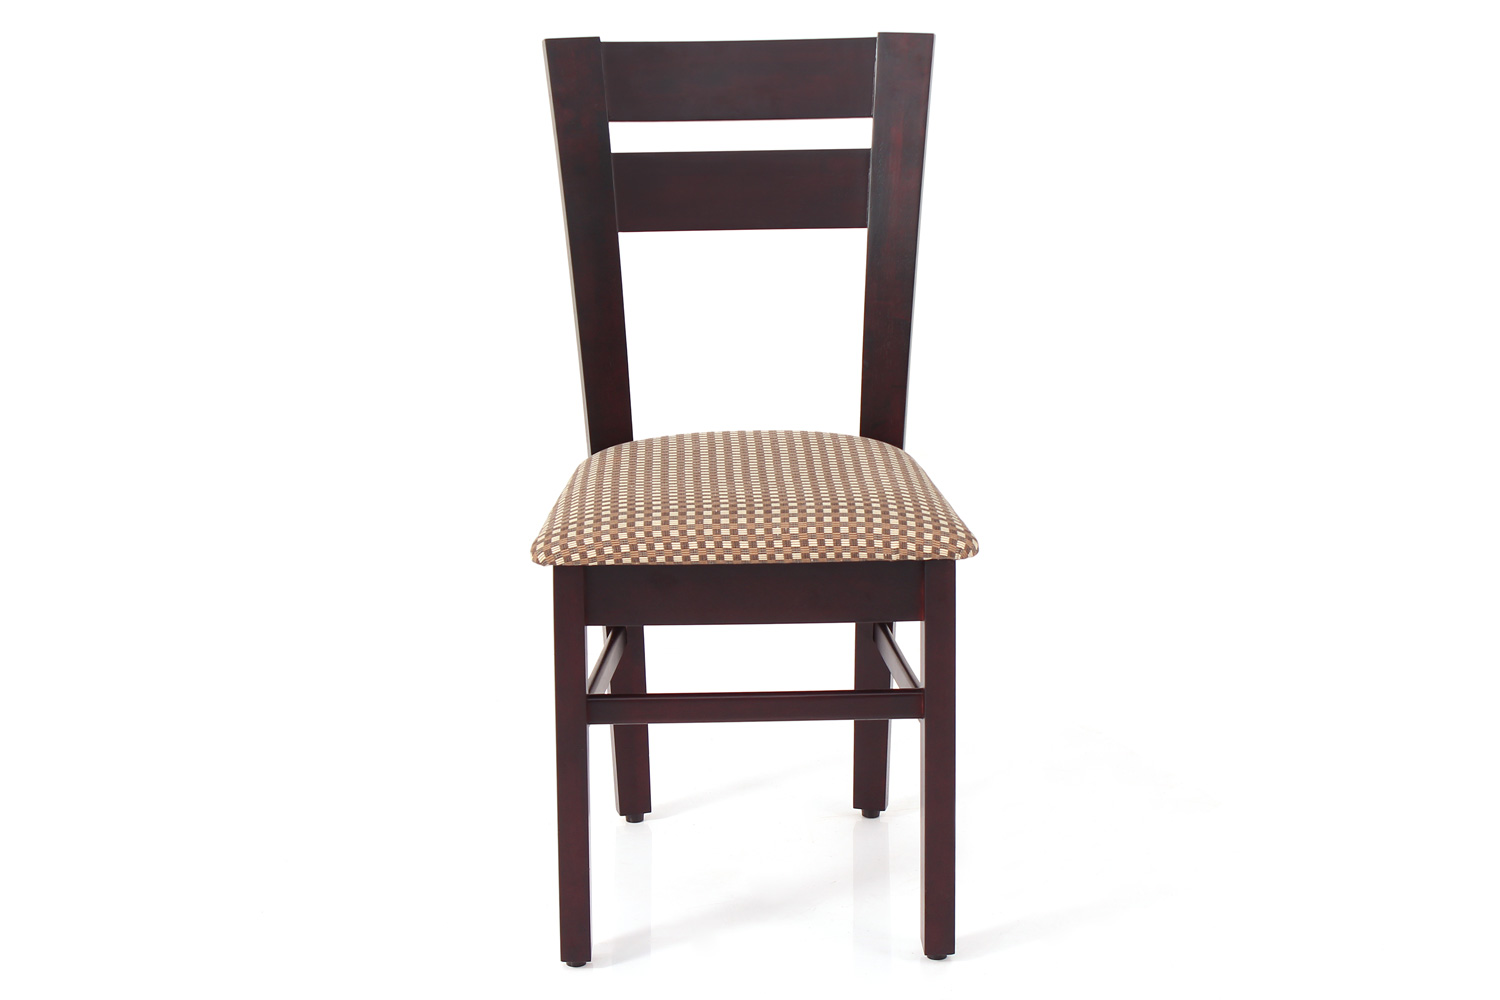 touchwood_berry_solidwood_dining_chair_set_of_2_rosewood_finish_3_4